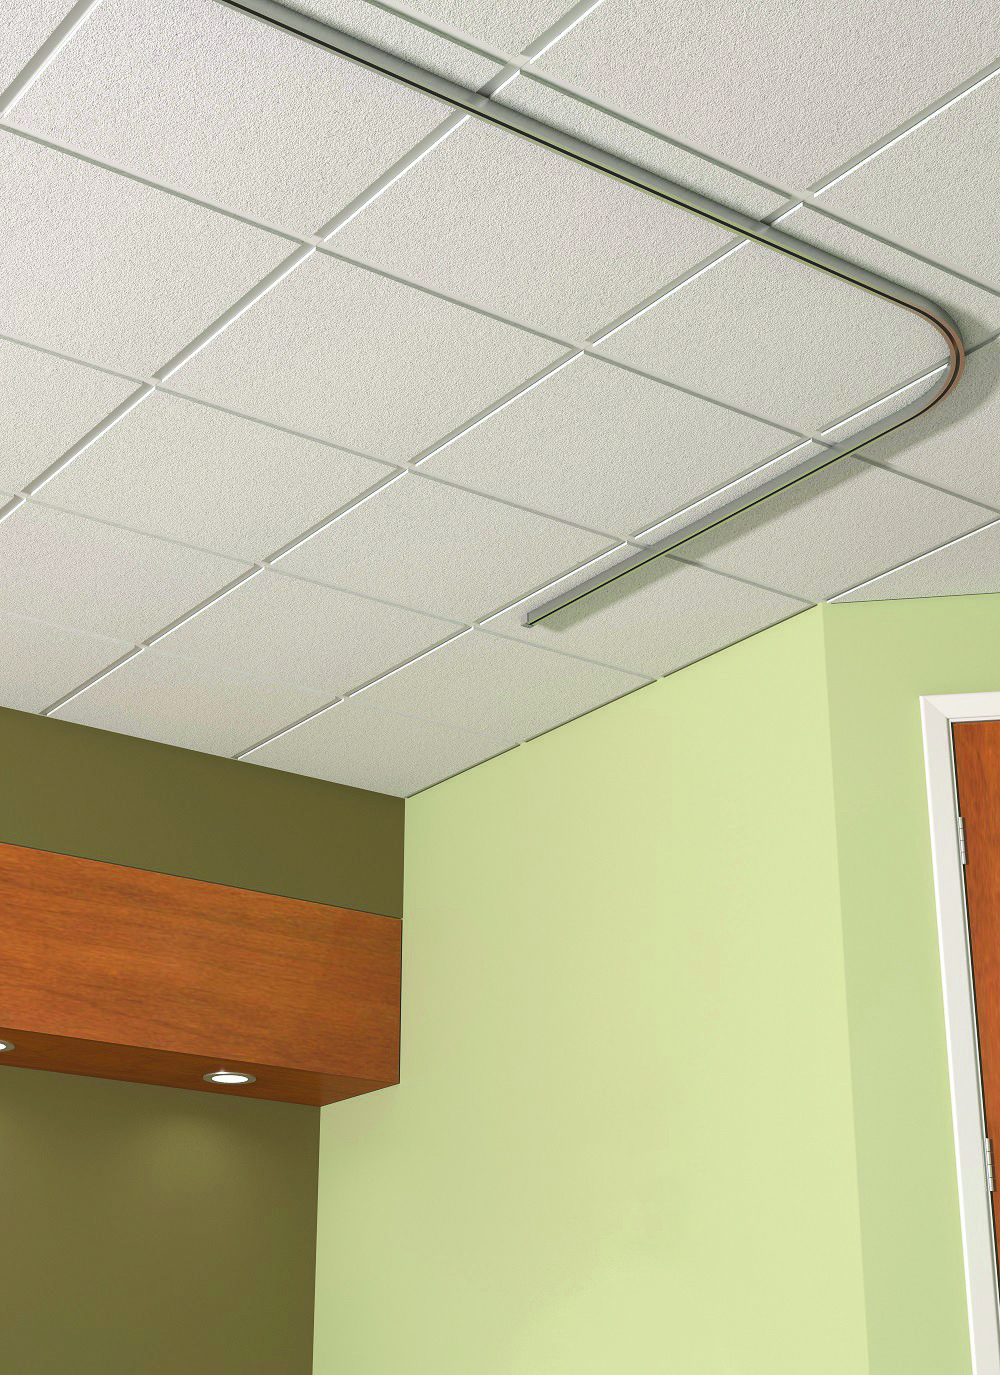 Cover All Your Bases With Usg Luna Climaplus Lay In Ceiling Tile A Perfect Addition To Drop Ceilings These Pane Ceiling Tile Sound Control Ceiling Tile Panel